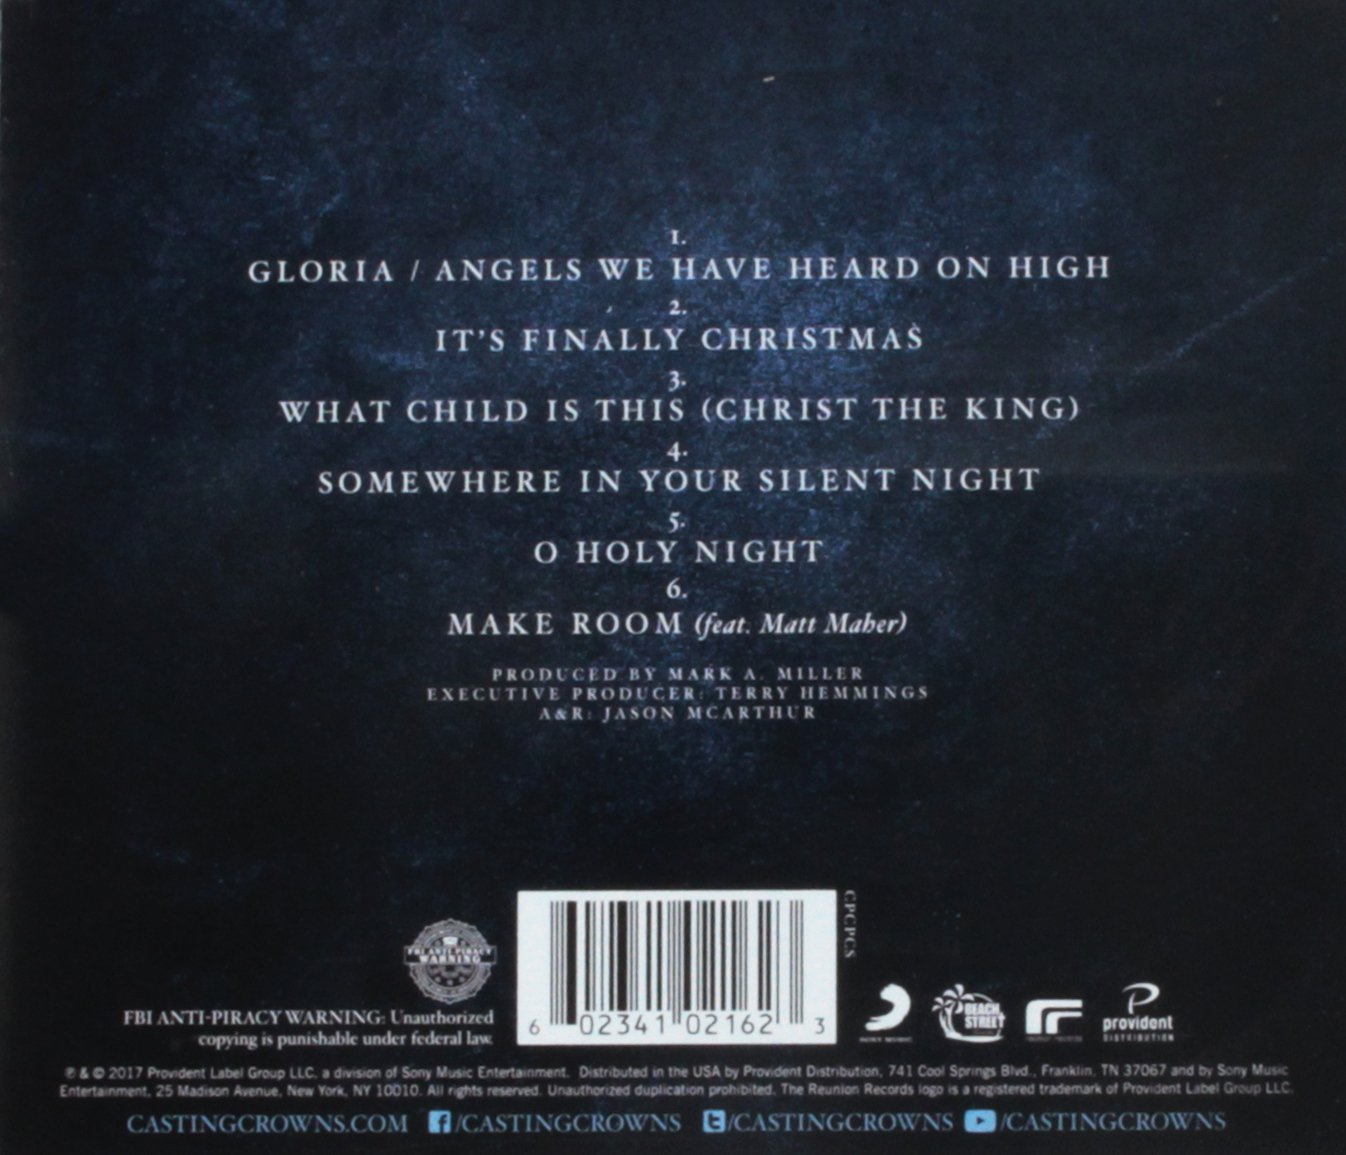 casting crowns its finally christmas ep amazoncom music - Casting Crowns Christmas Songs